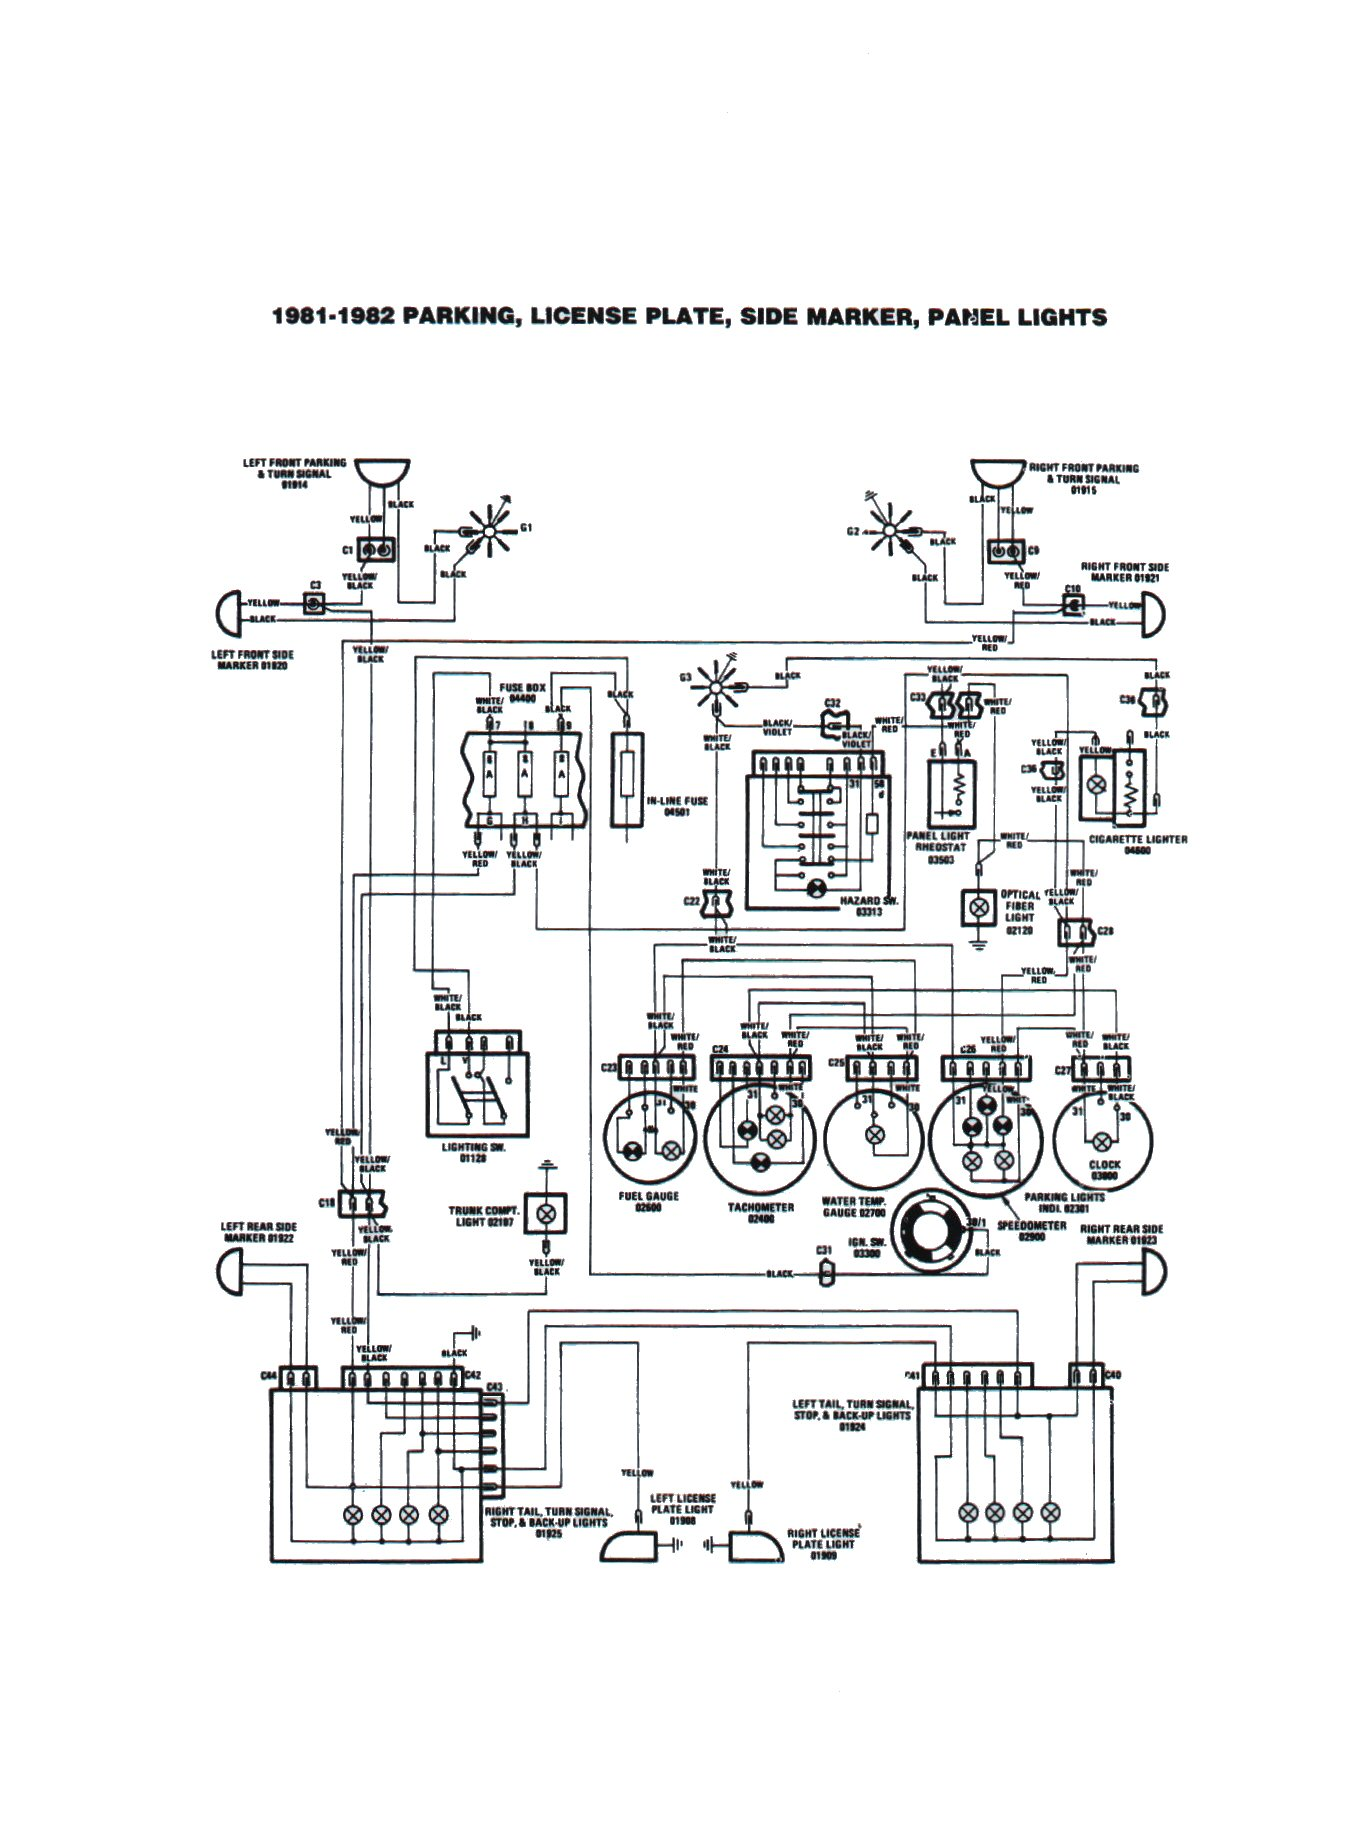 Wiring Diagram PDF: 124 Spider Wiring Diagram